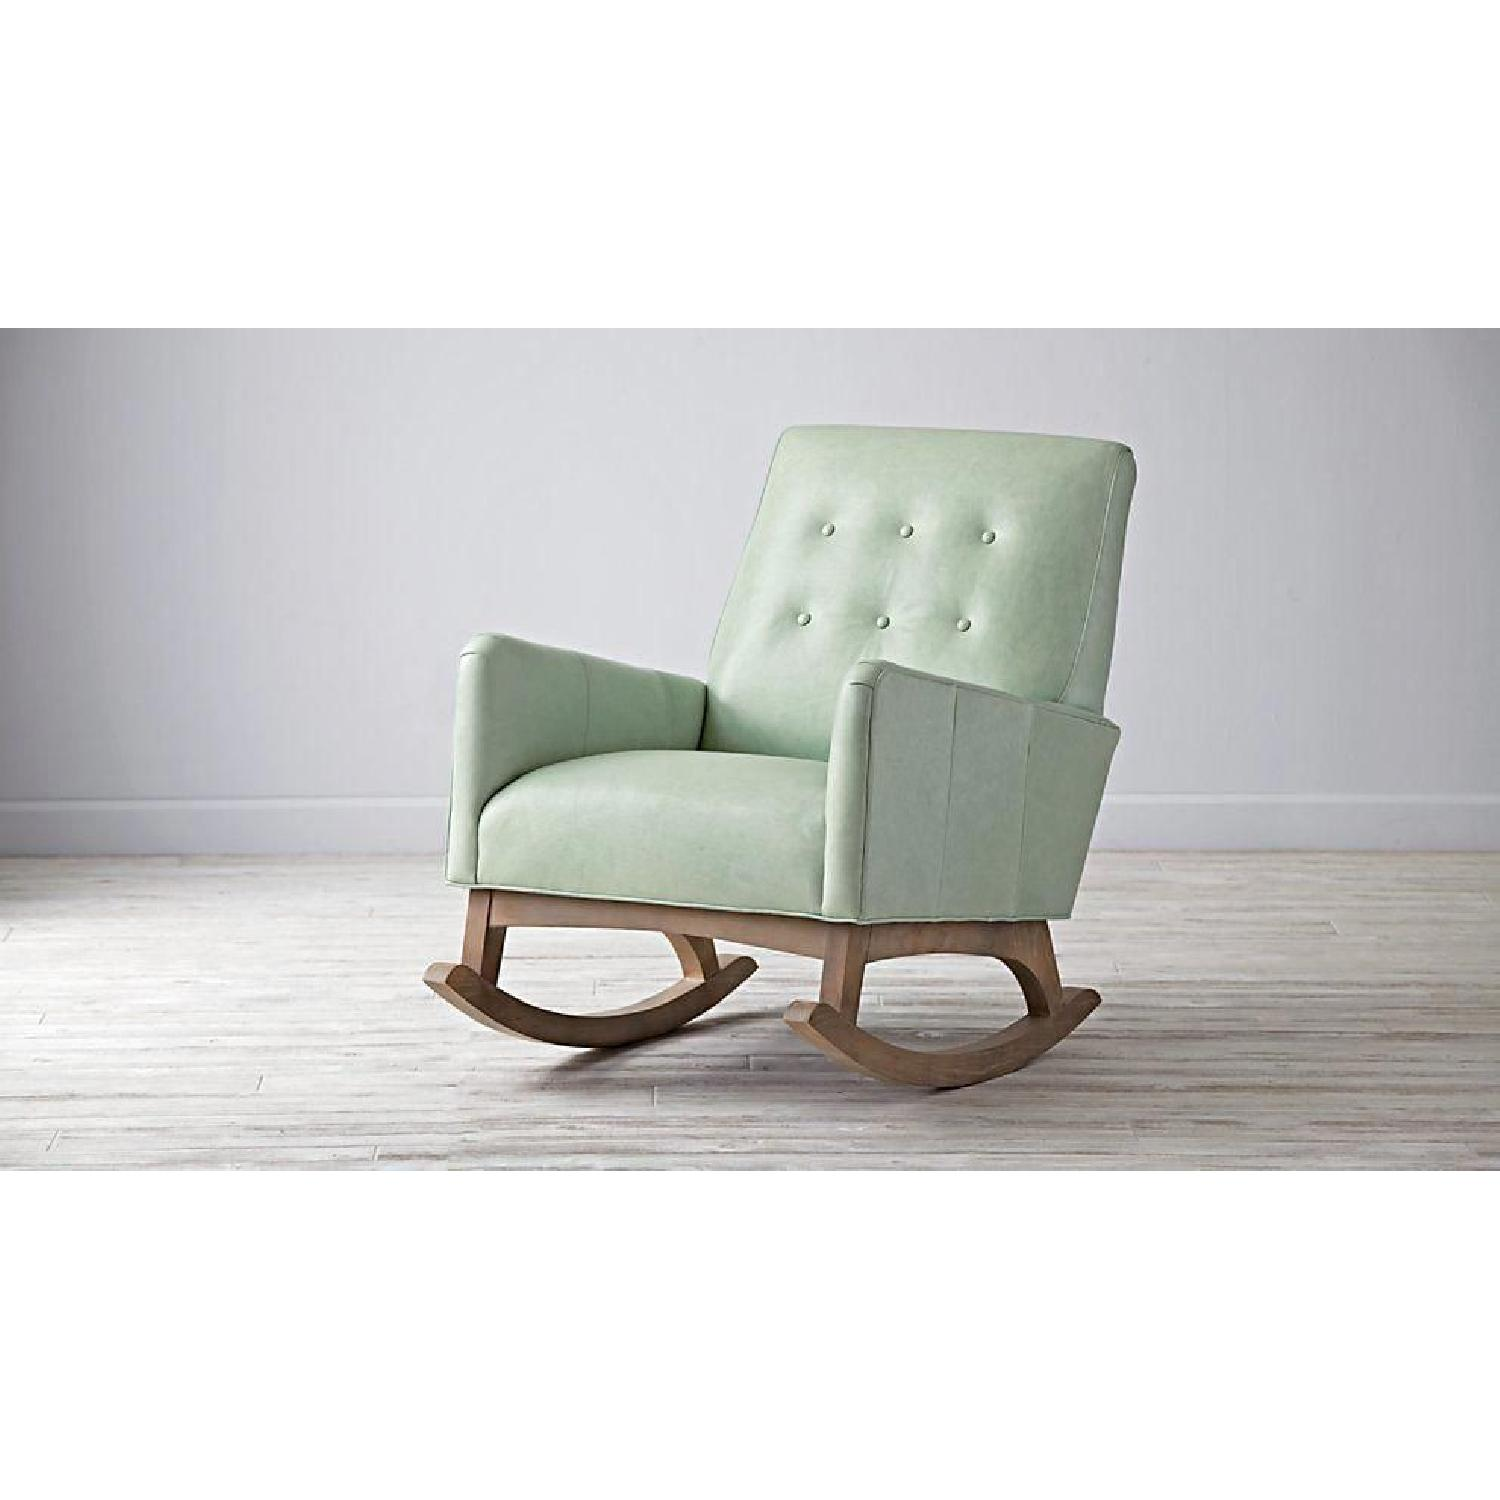 Crate & Barrel Everly Sage Leather Rocking Chair - image-2